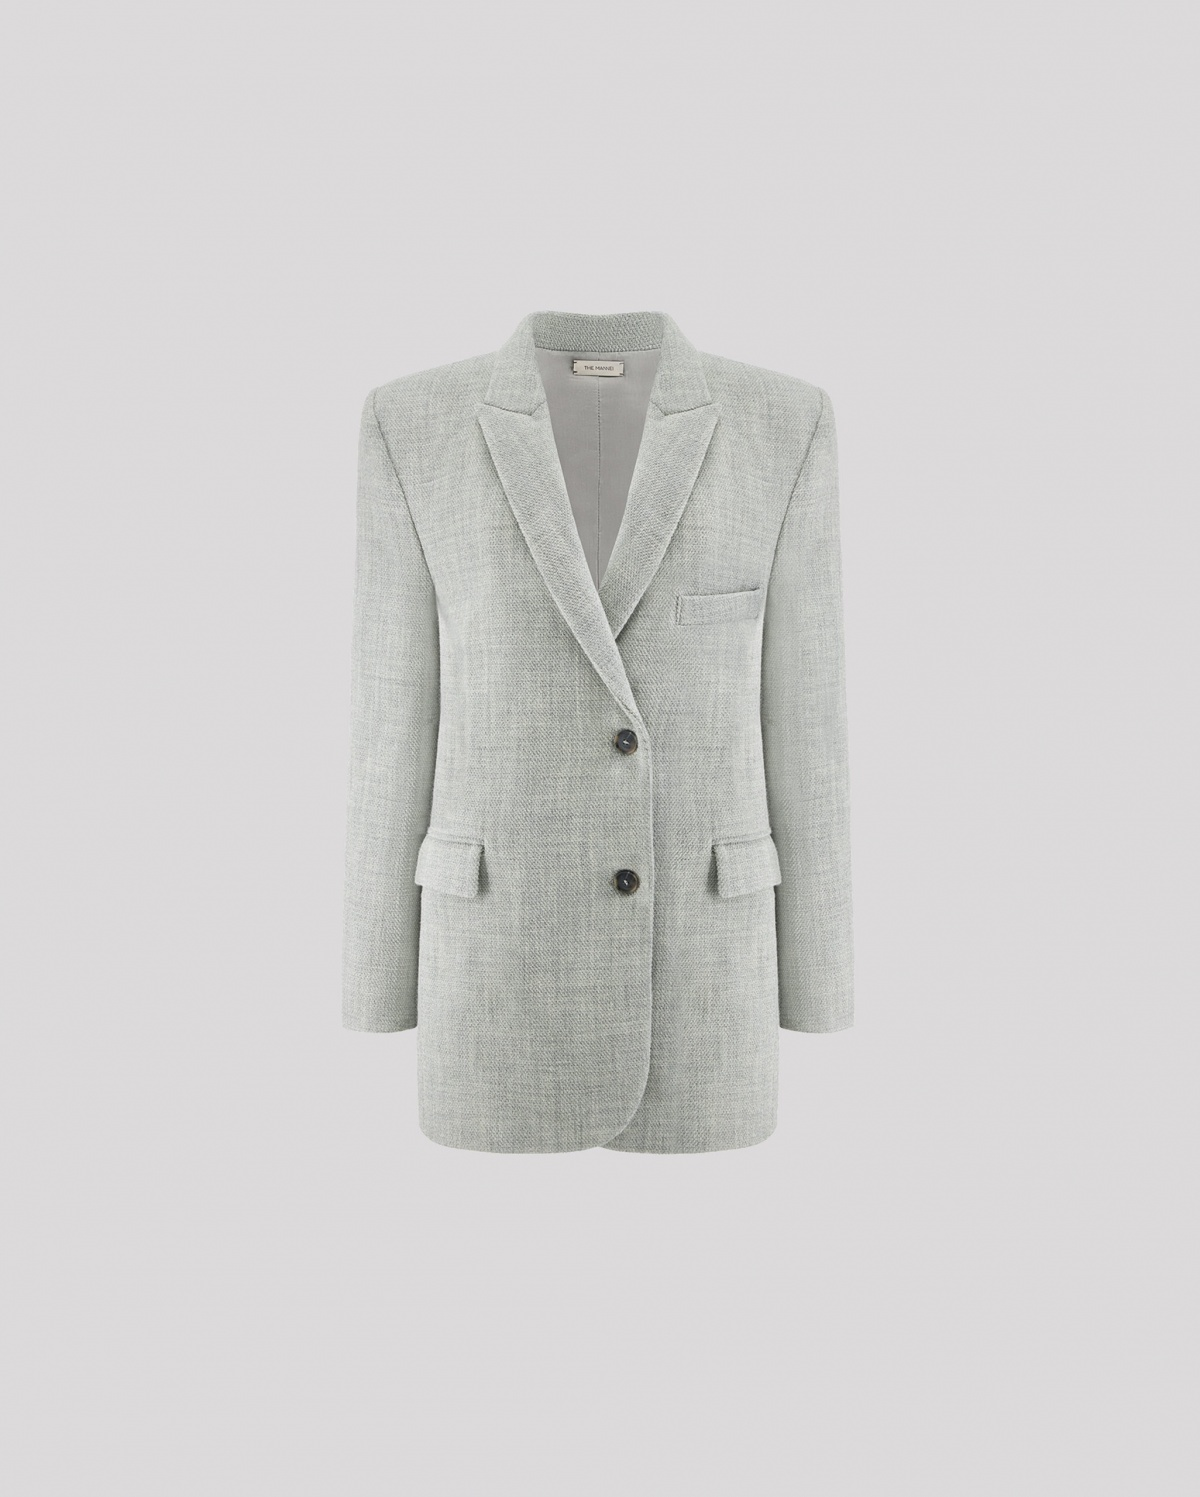 Tailored oversized blazer in grey by GREENOCK IN GREY, available on themannei.com for $1.4 Hailey Baldwin Outerwear Exact Product